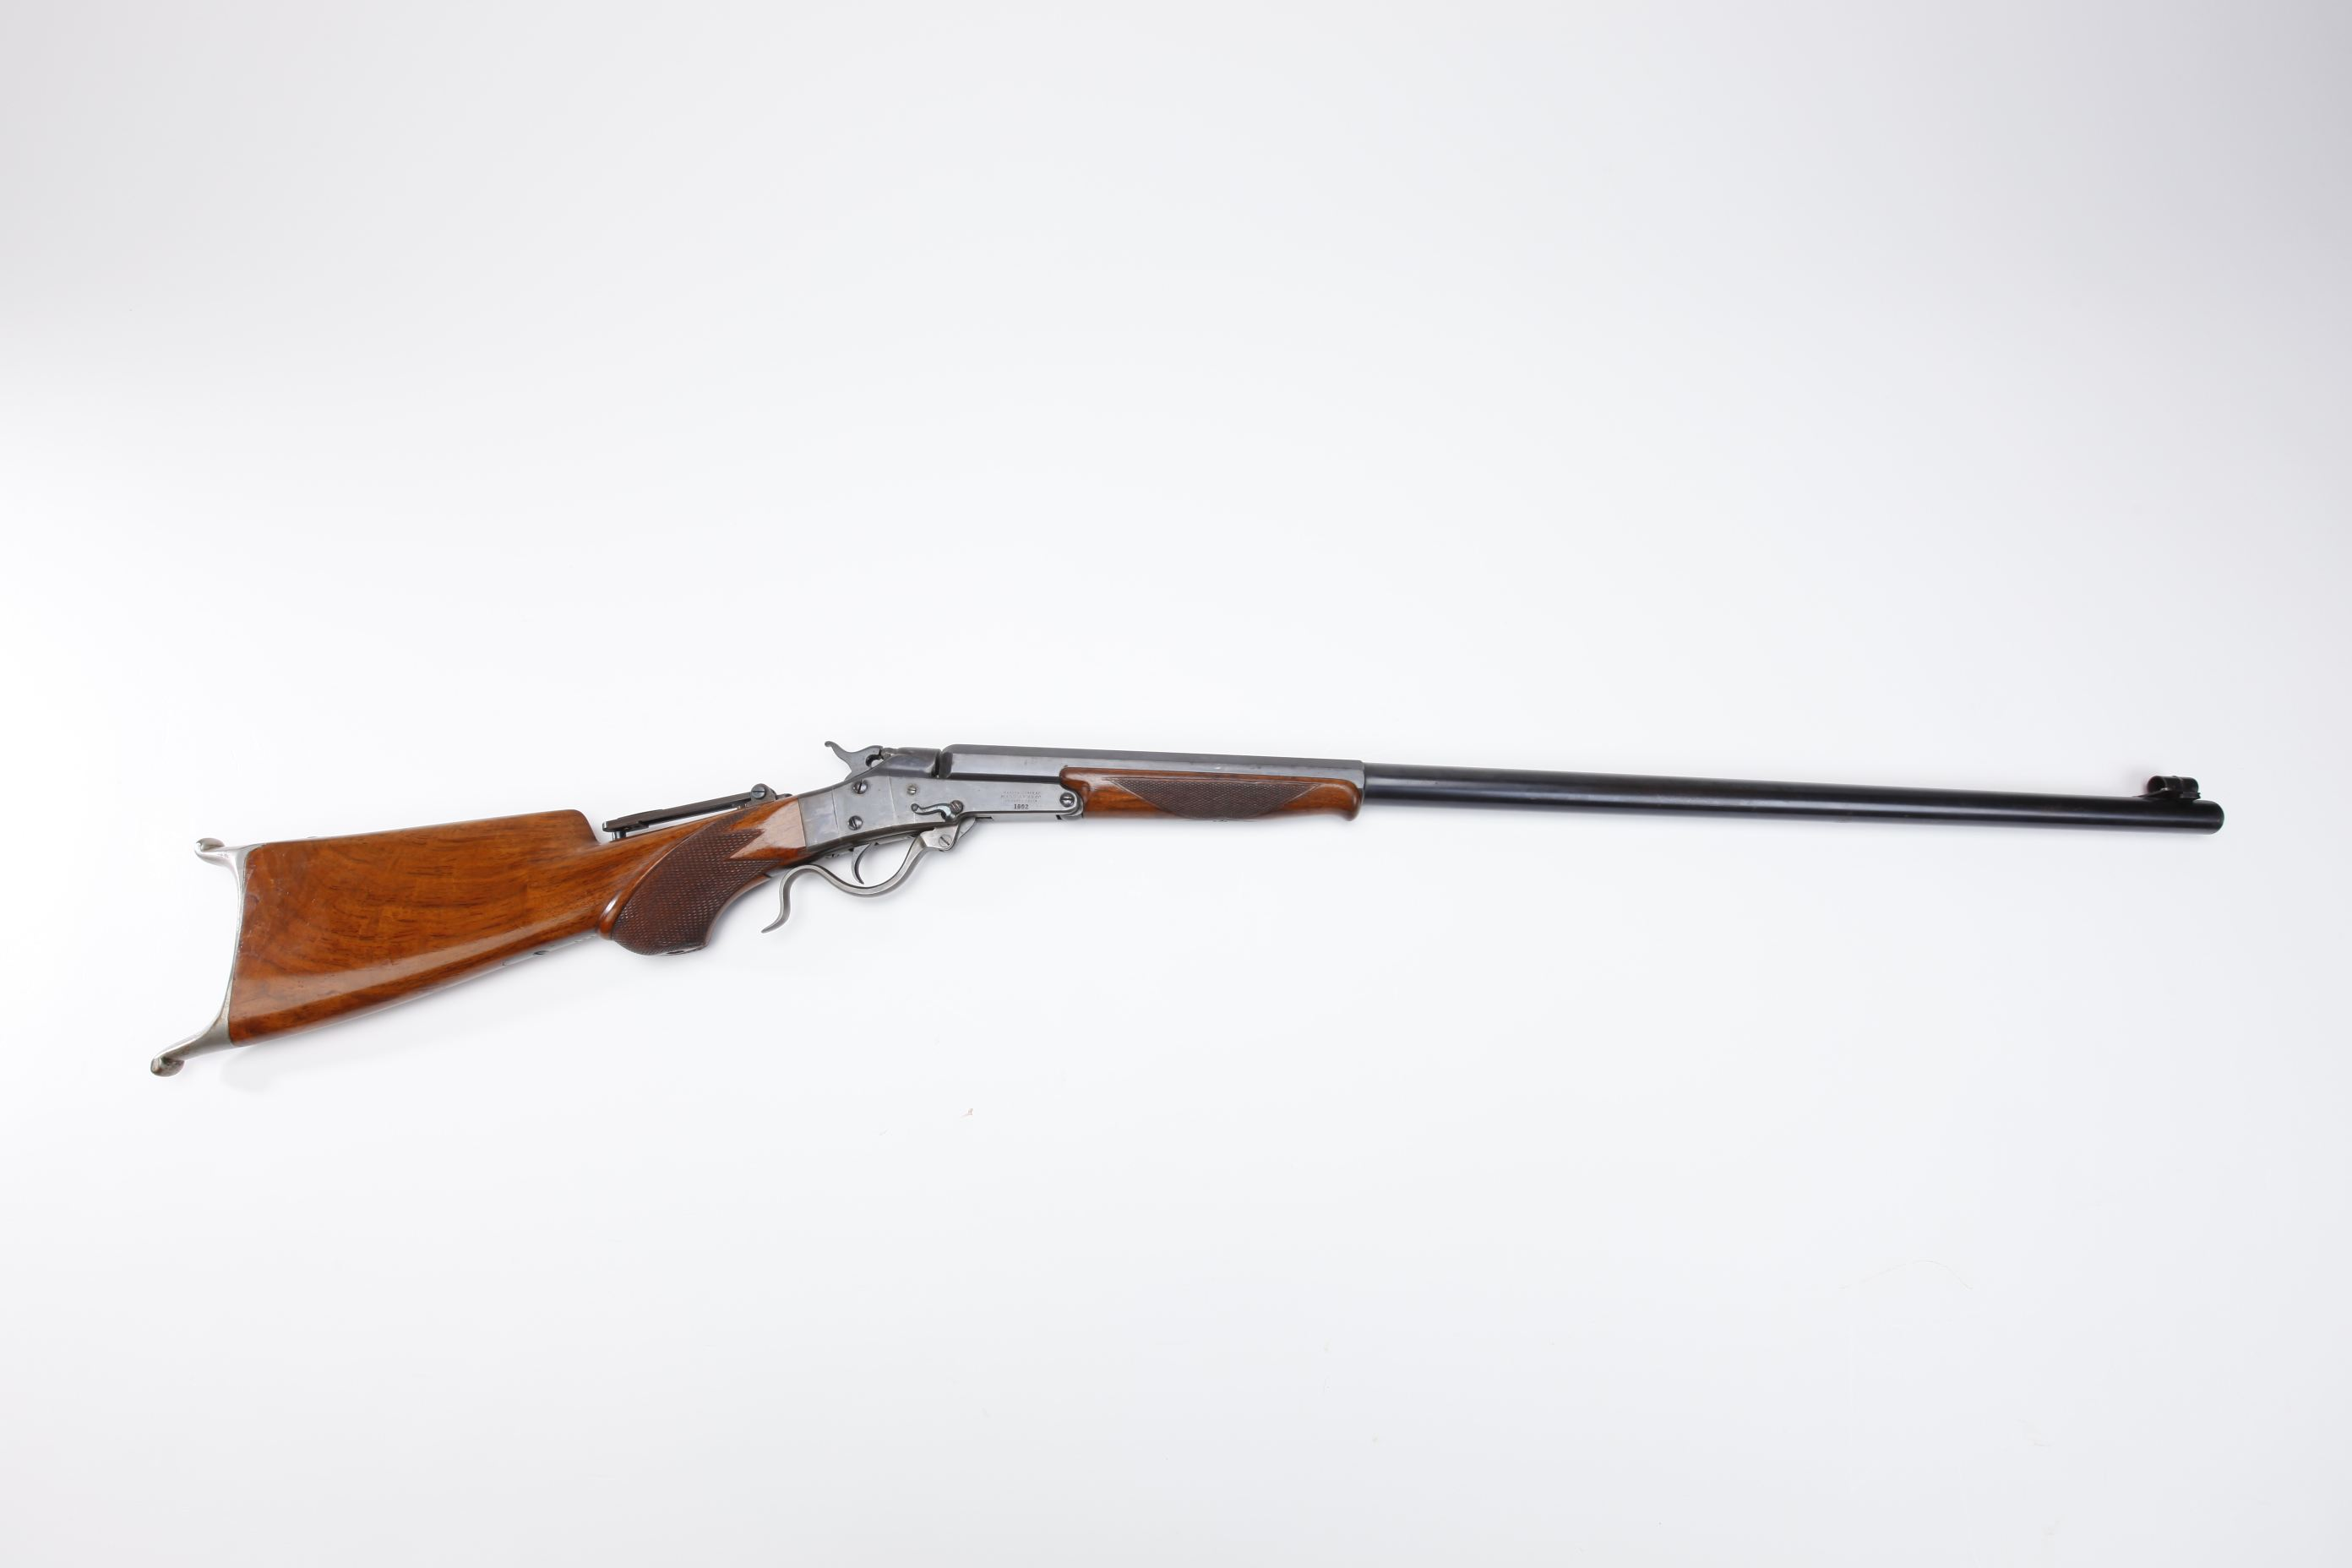 Massachusetts Arms Maynard Model 1873 Rifle